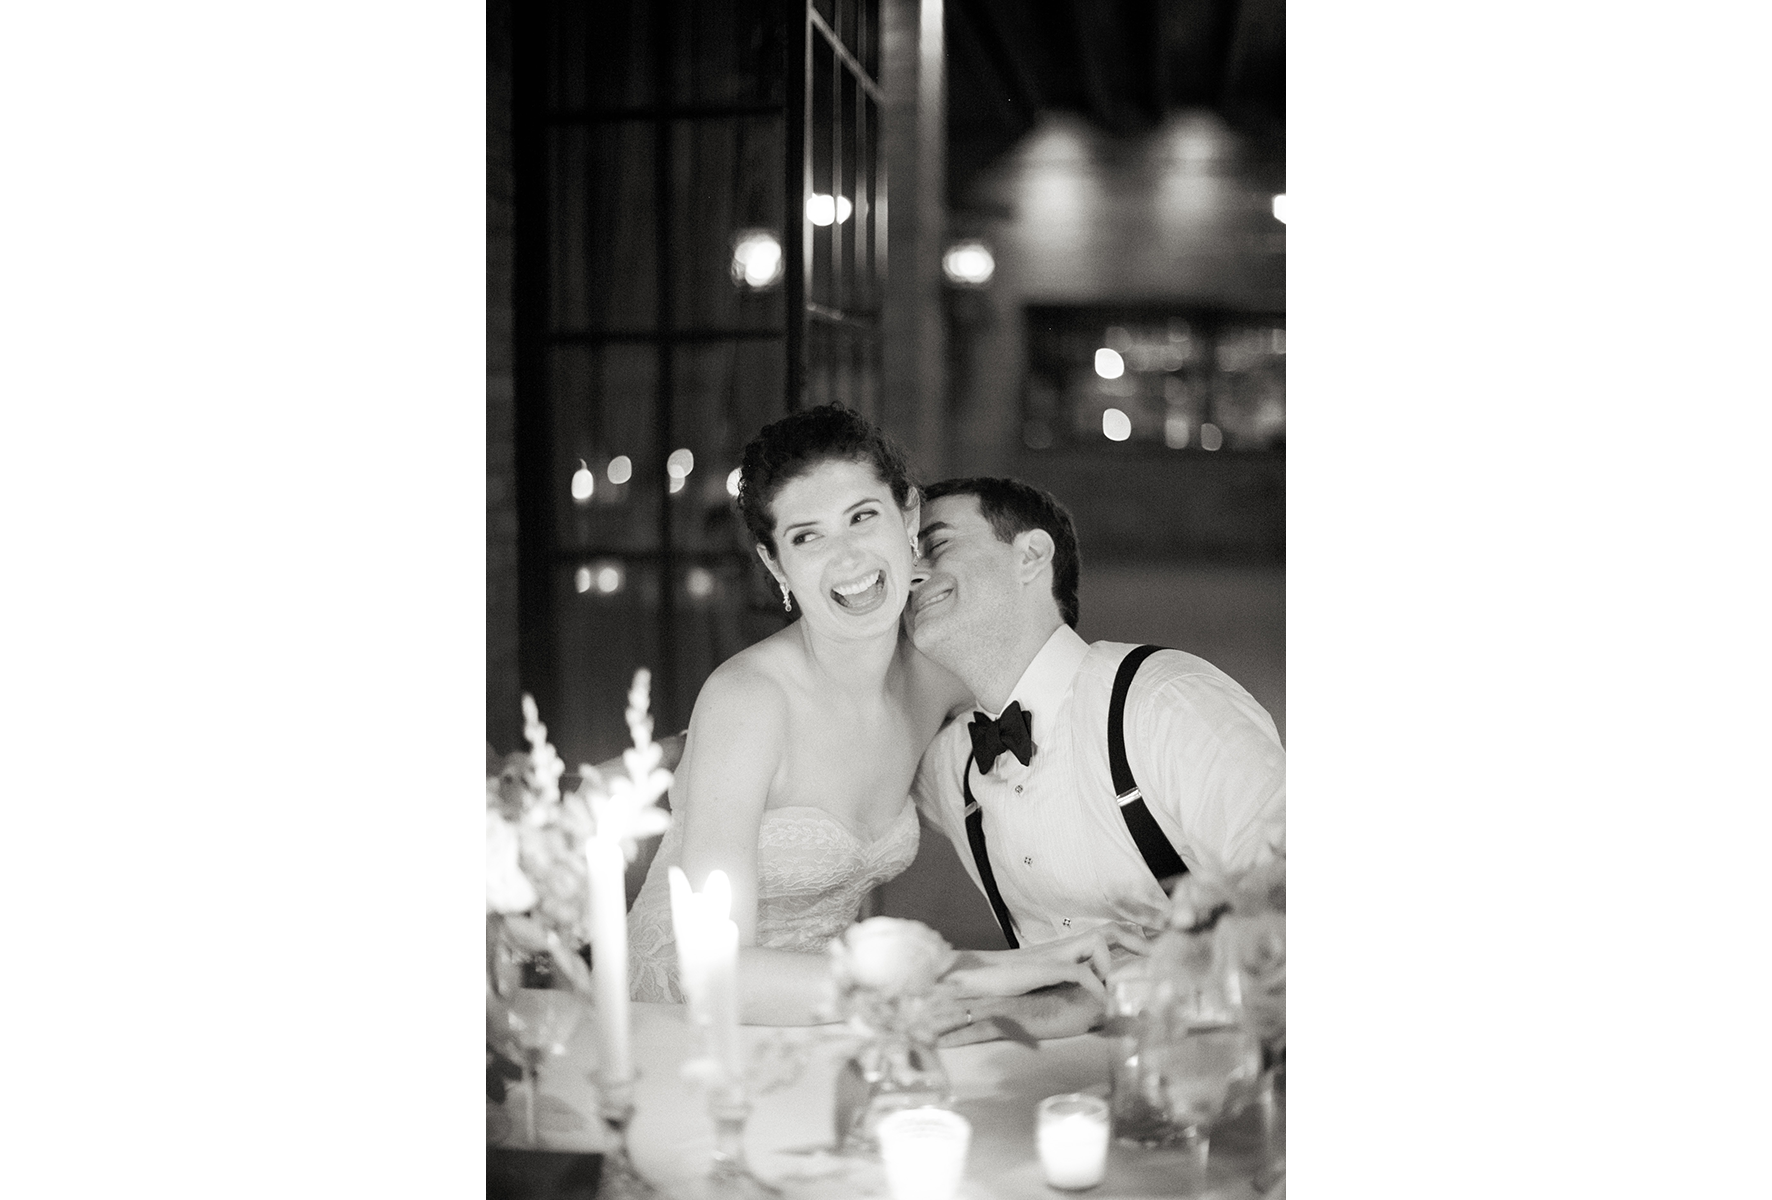 raquelreis_wedding_photography_highlights_047.png